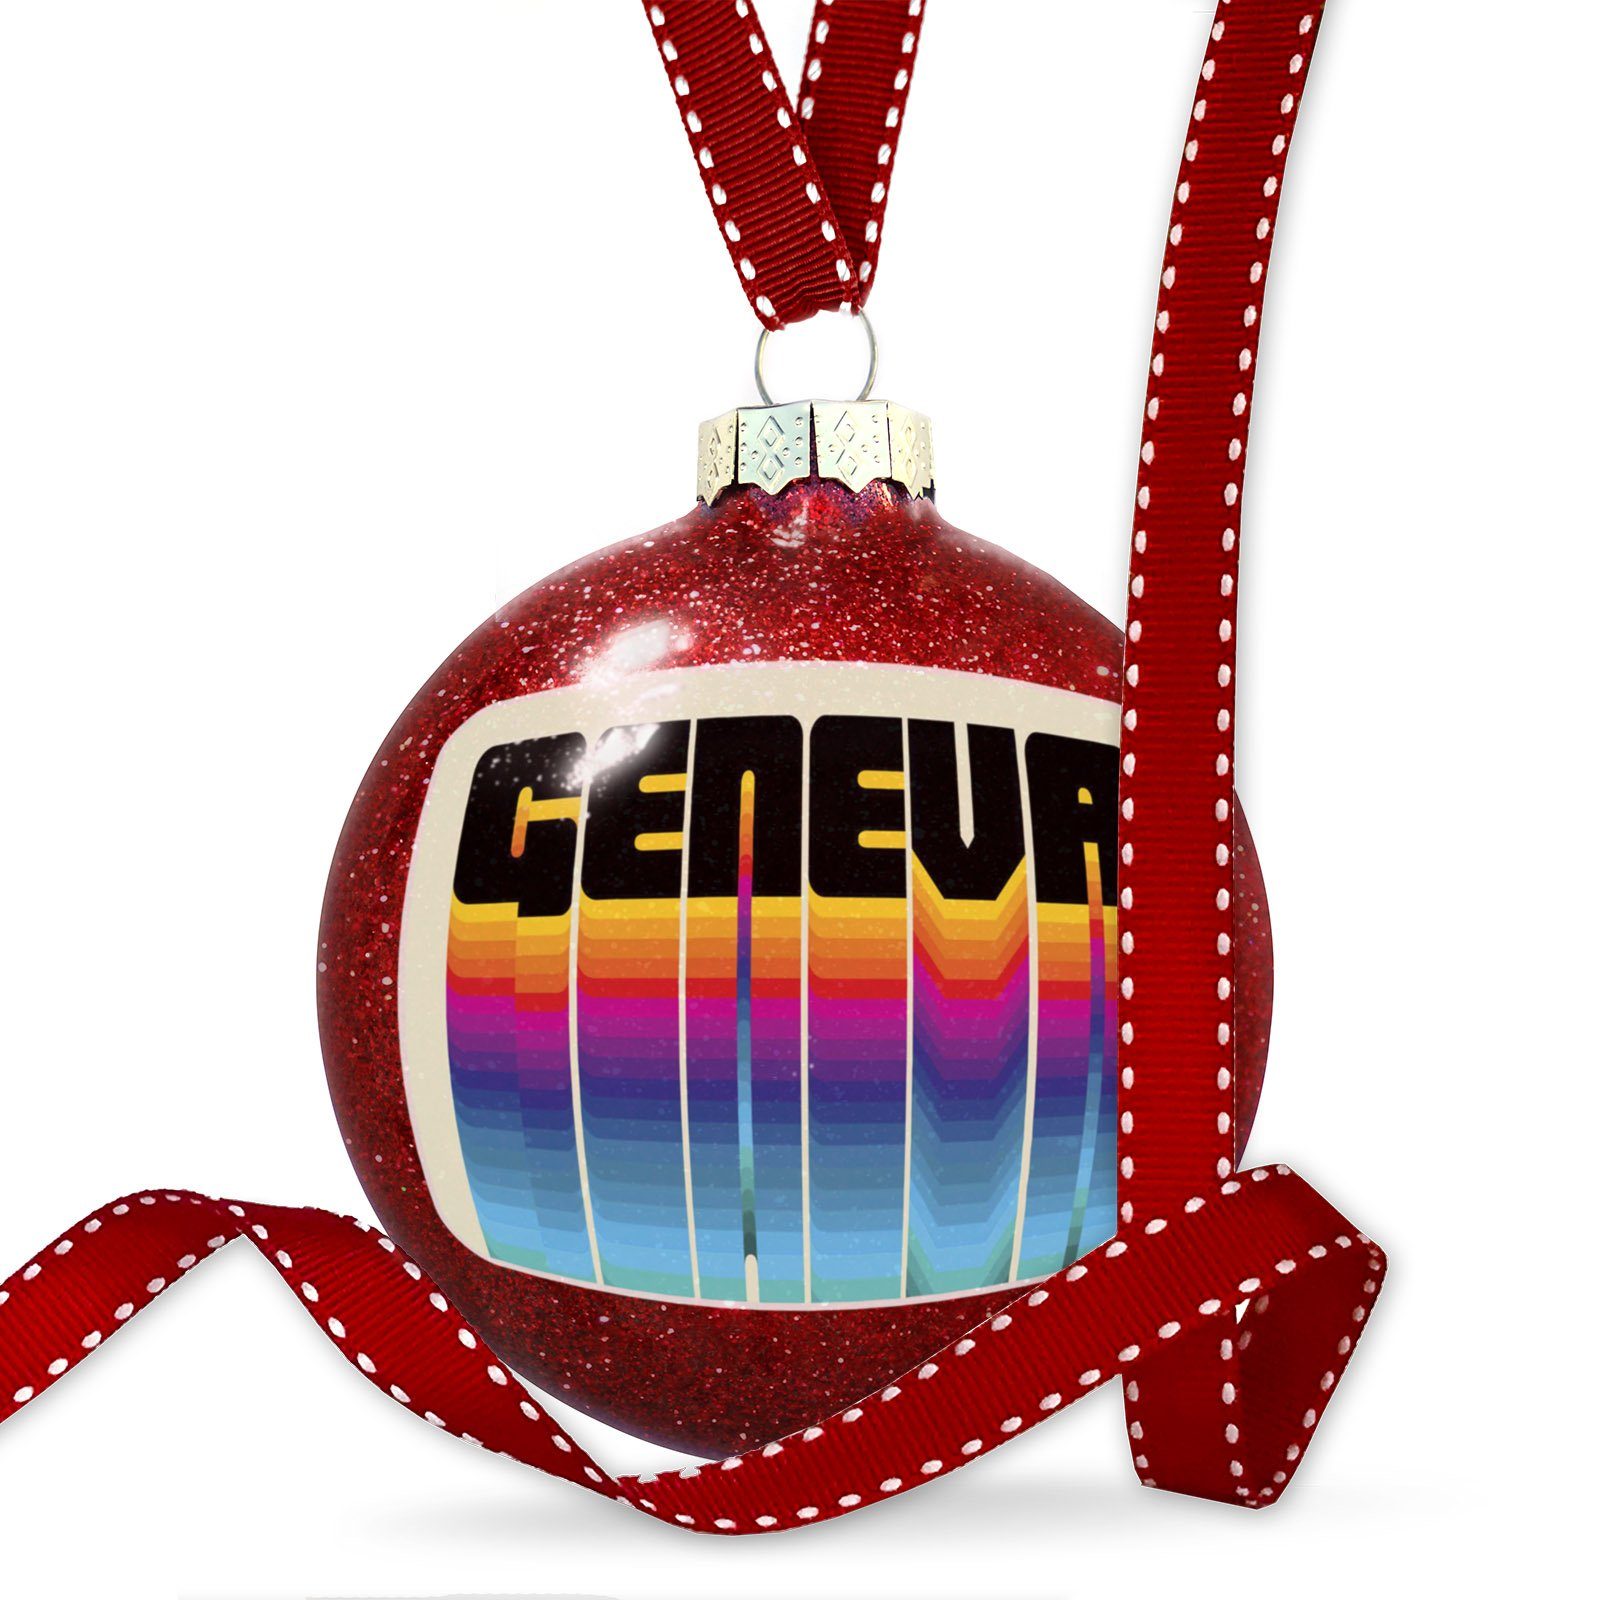 Christmas Decoration Retro Cites States Countries Geneva Ornament